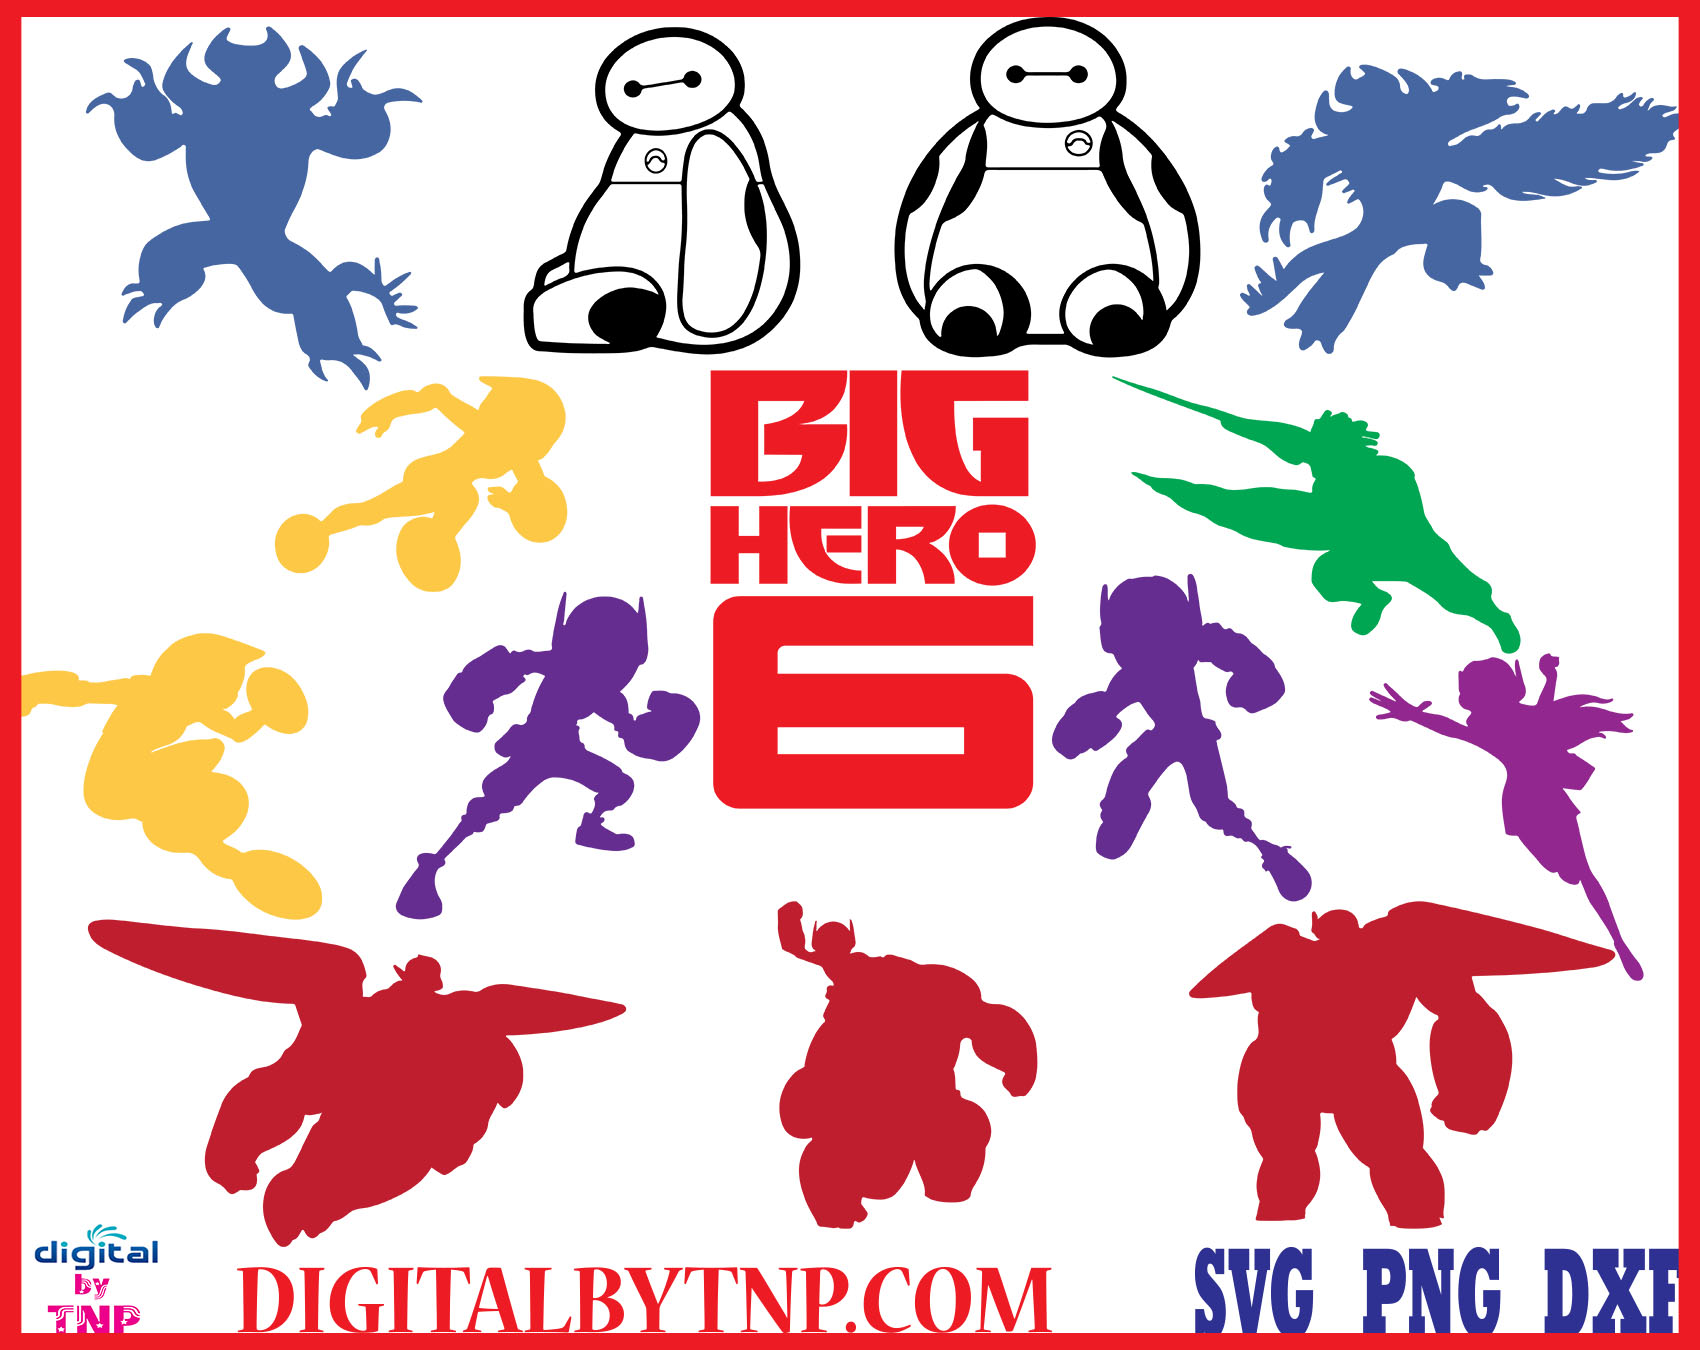 Big Hero 6 Svg Baymax Svg Big Hero 6 Tadashi Svg Baymax Heart Svg Svg Clipart Big Hero Cut File Svg Png Dxf Eps Customer Satisfaction Is Our Priority